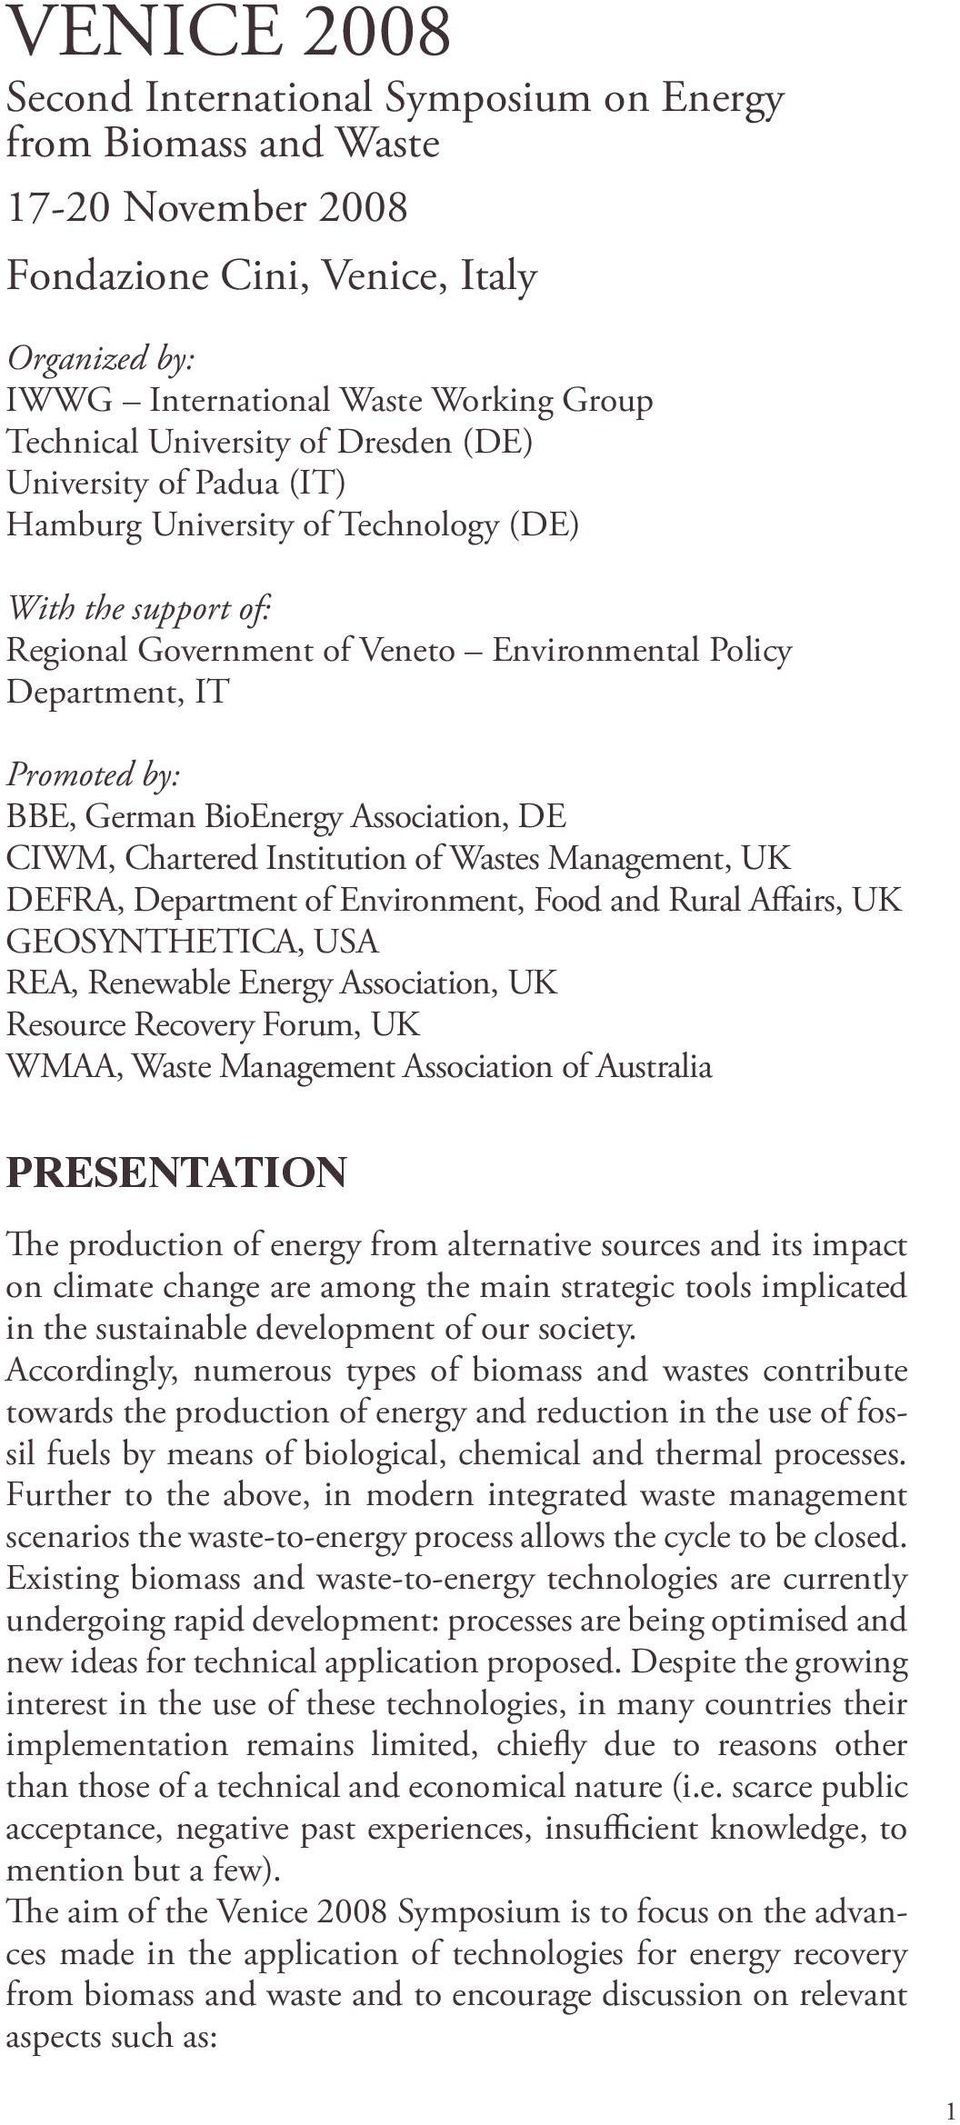 German BioEnergy Association, DE CIWM, Chartered Institution of Wastes Management, UK DEFRA, Department of Environment, Food and Rural Affairs, UK GEOSYNTHETICA, USA REA, Renewable Energy